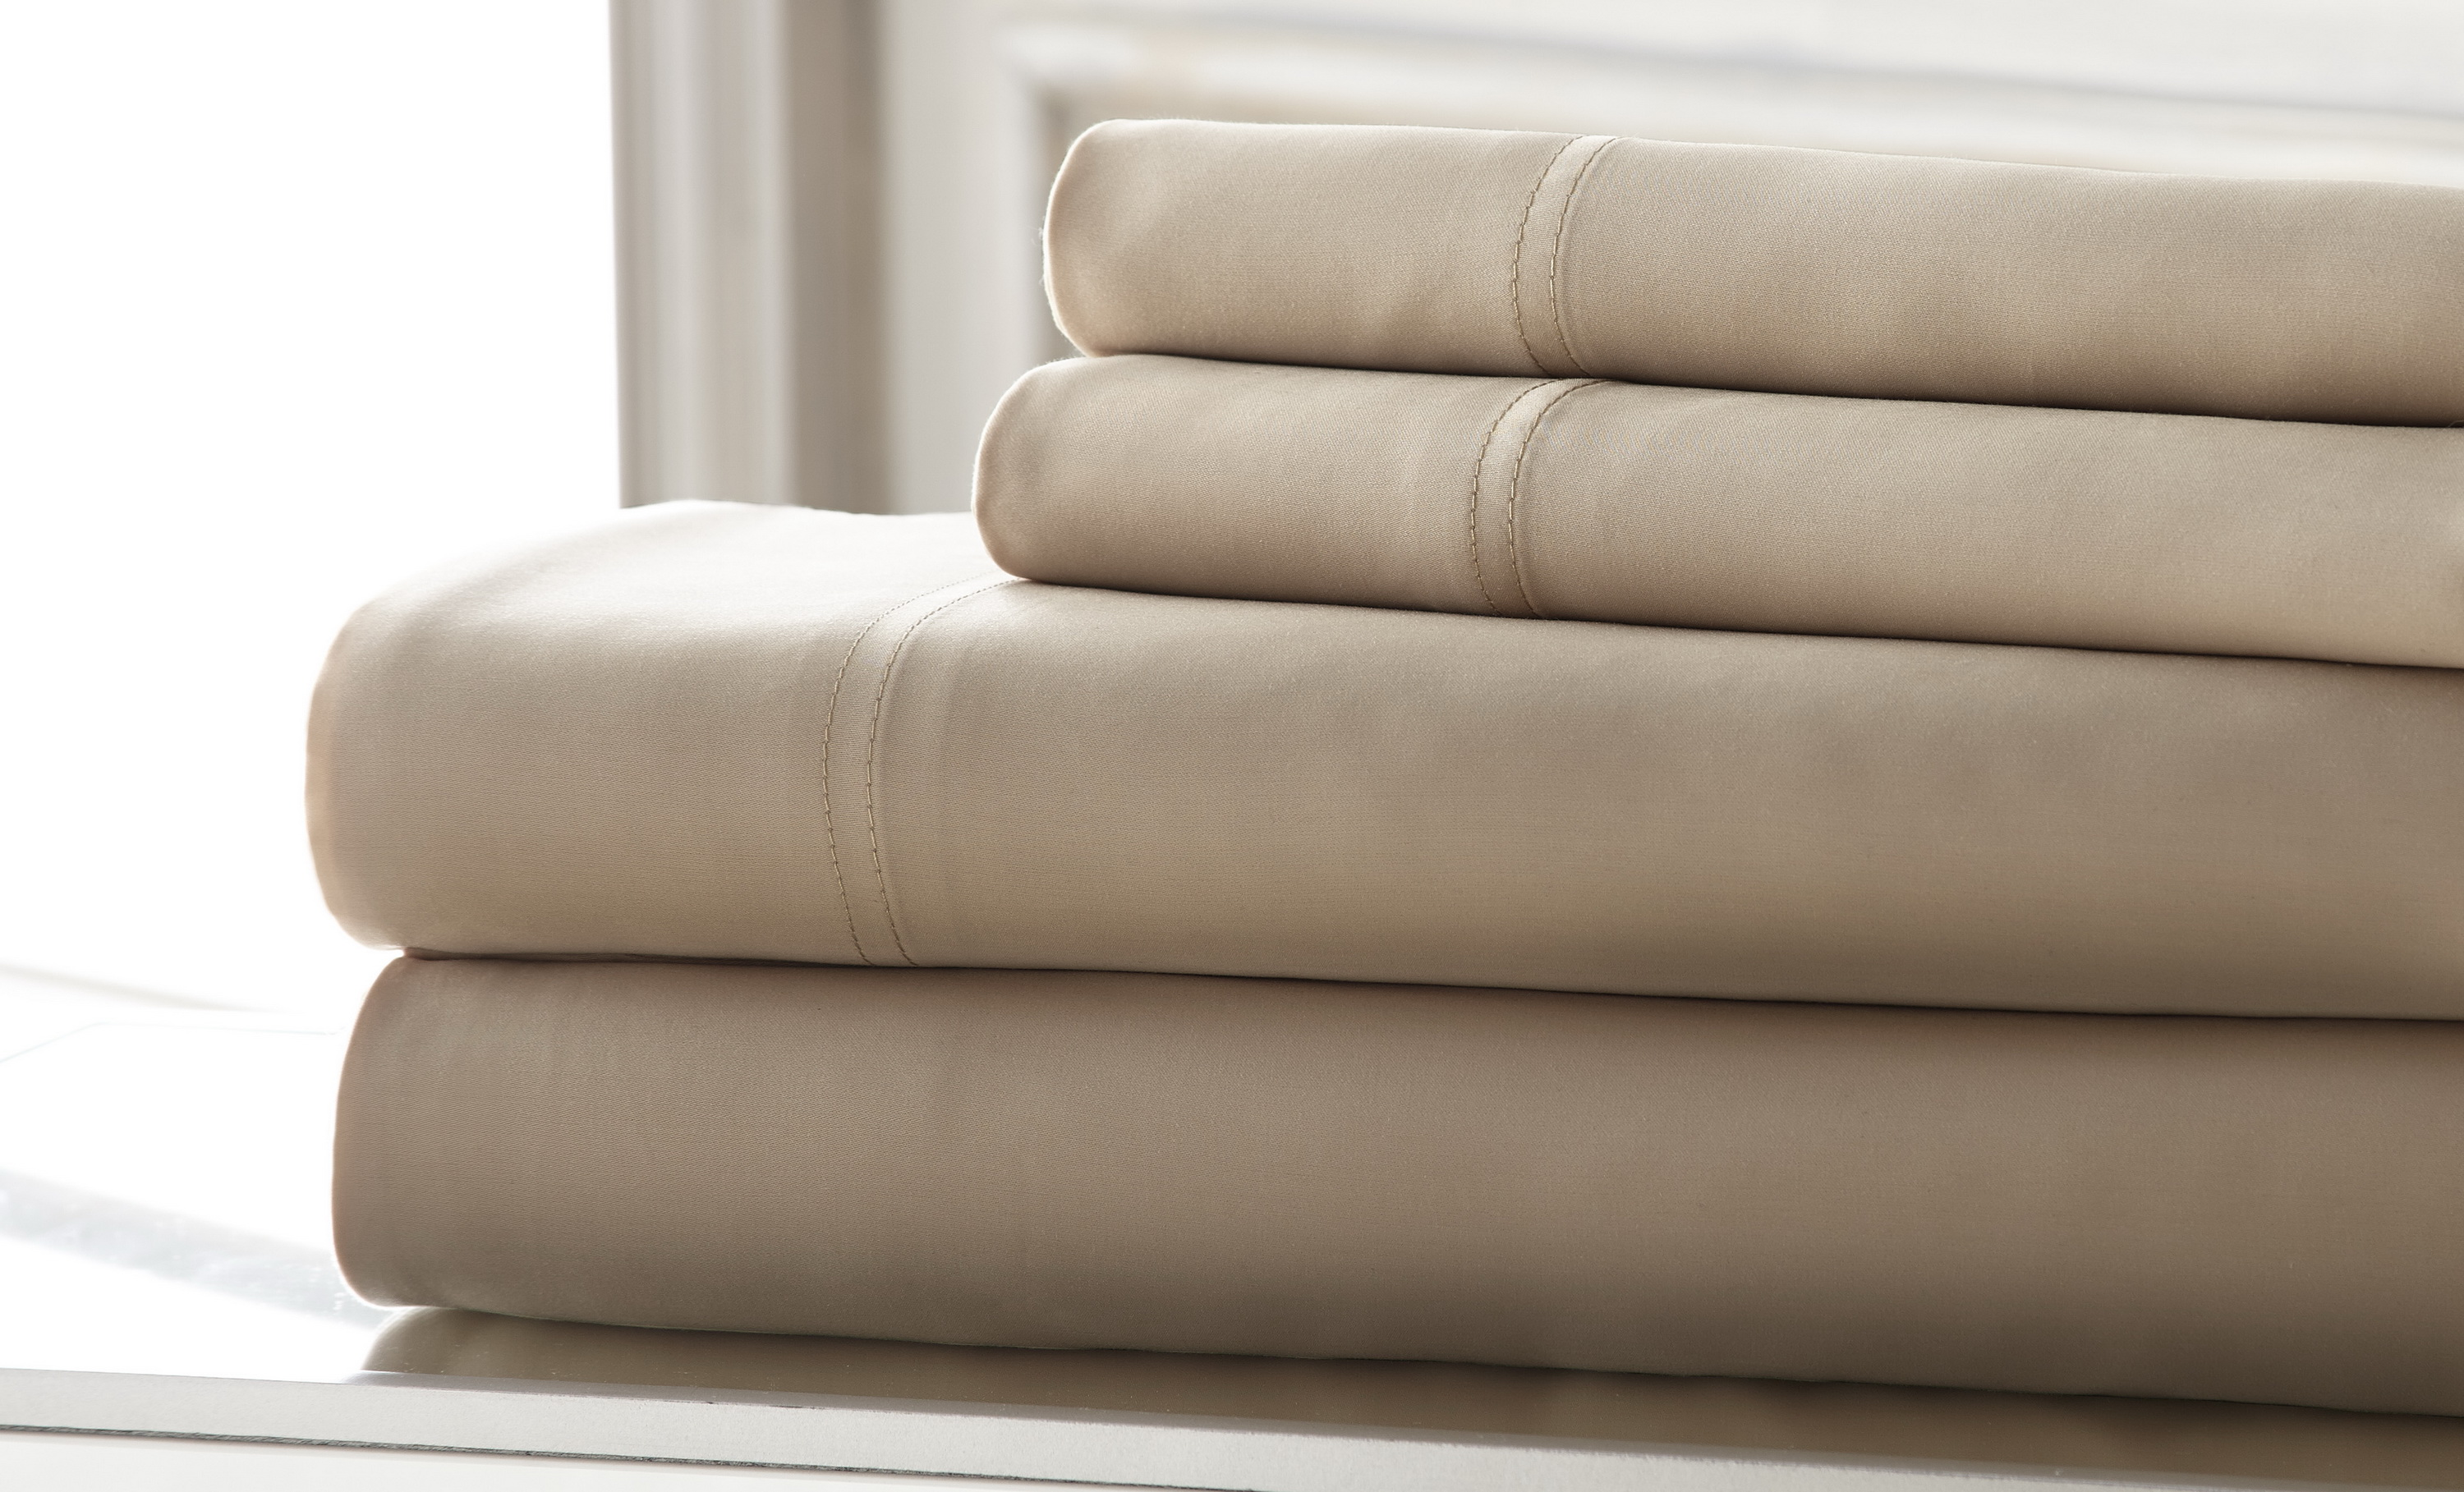 Tencel Sheets Reviews And Buying Guide by www.snoremagazine.com